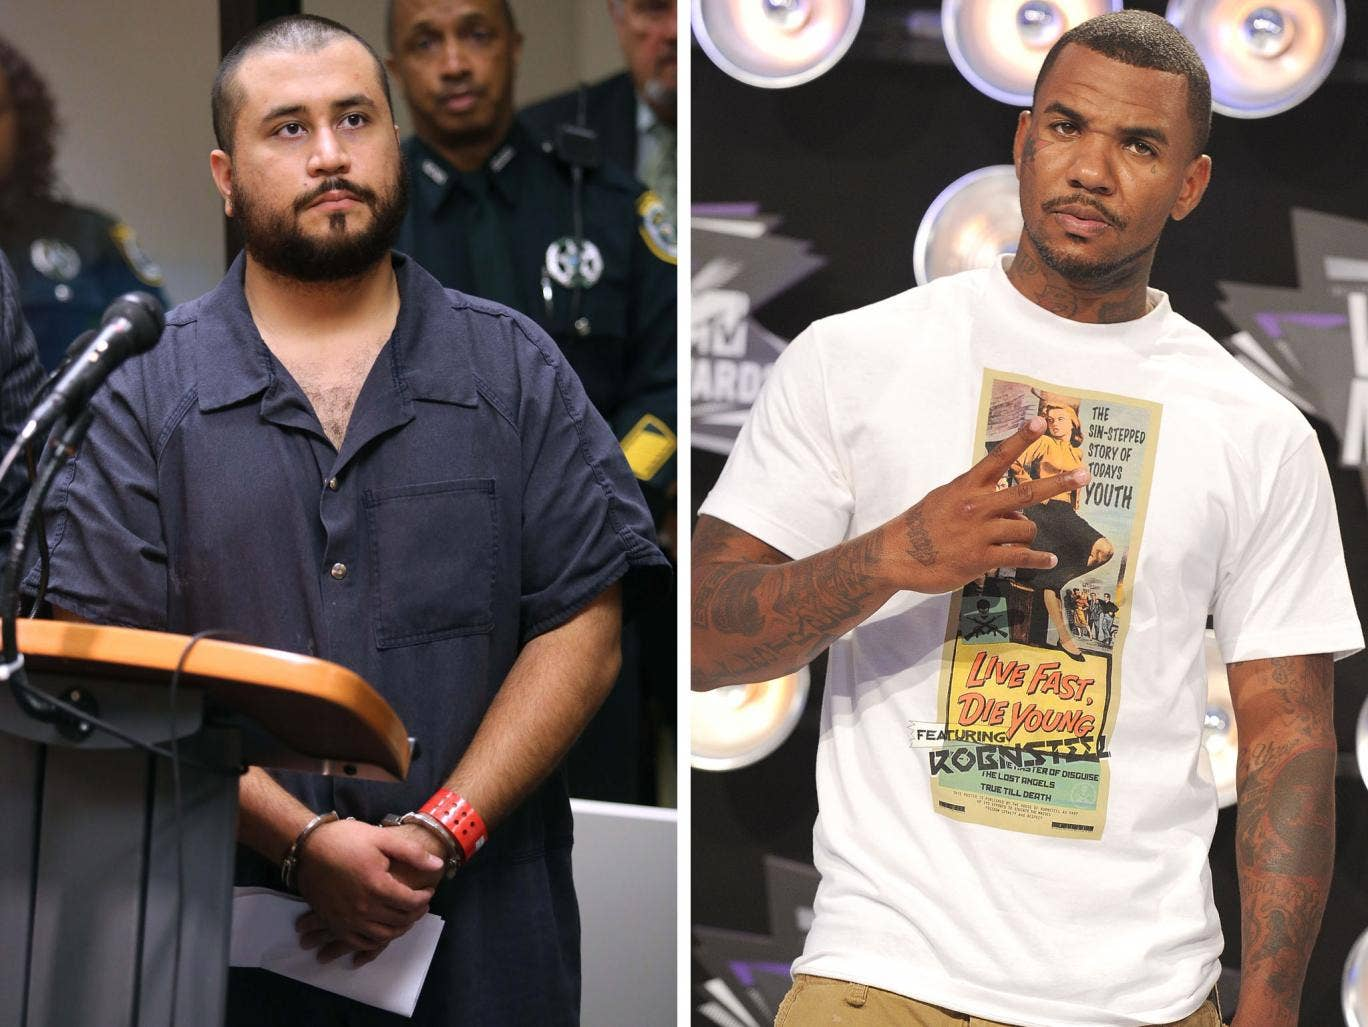 WTF: The Game Wants In For Celebrity Fight, But How in the ...